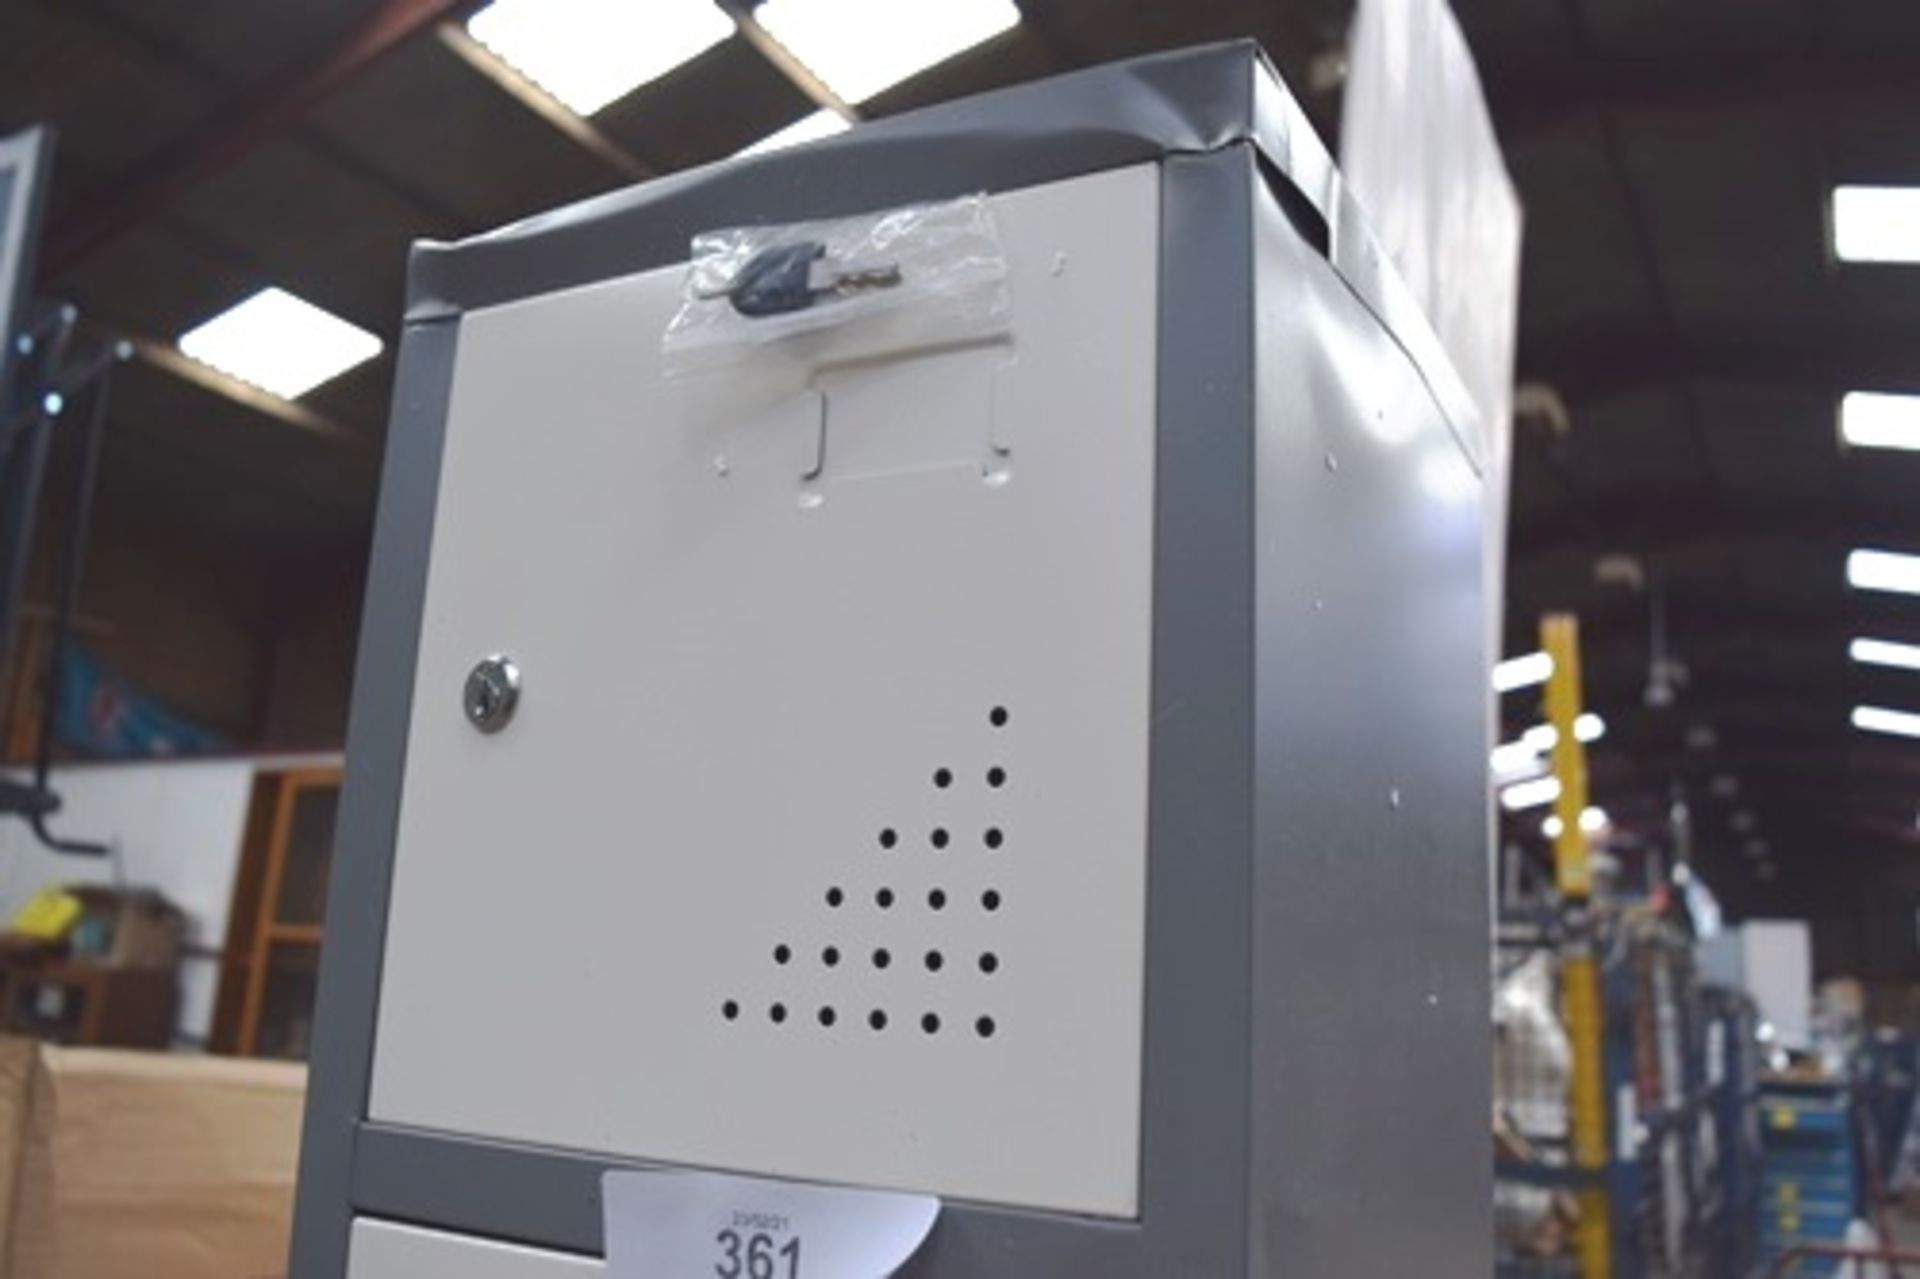 1 x The Workplace Depot Grey metal 6 locker unit, size 300 x 300 x 1800mm - New but with several - Image 3 of 3